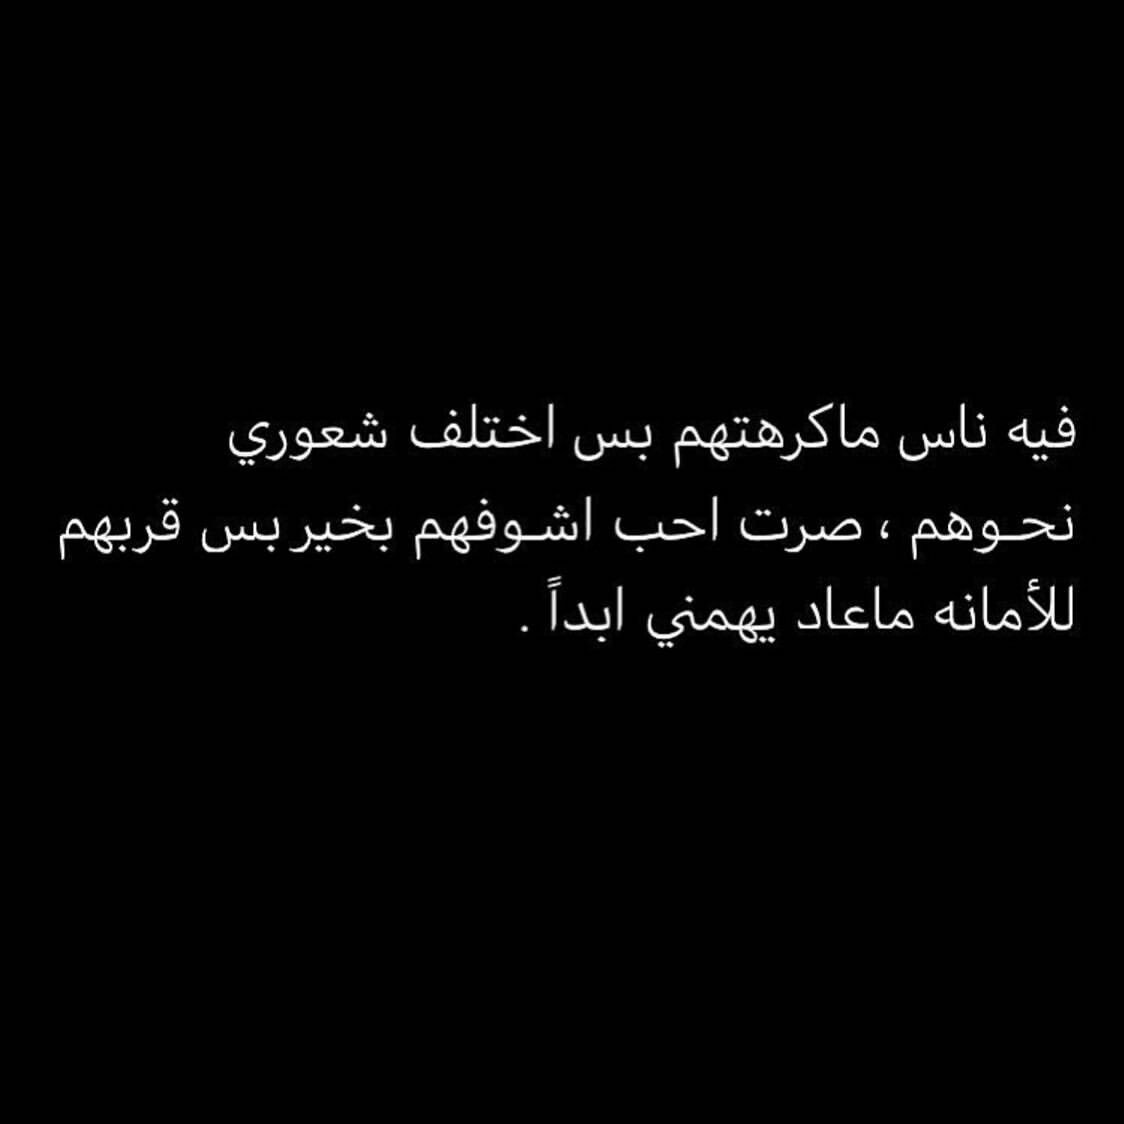 Pin By Zxcb Soom On كلام Mood Quotes Arabic Quotes Words